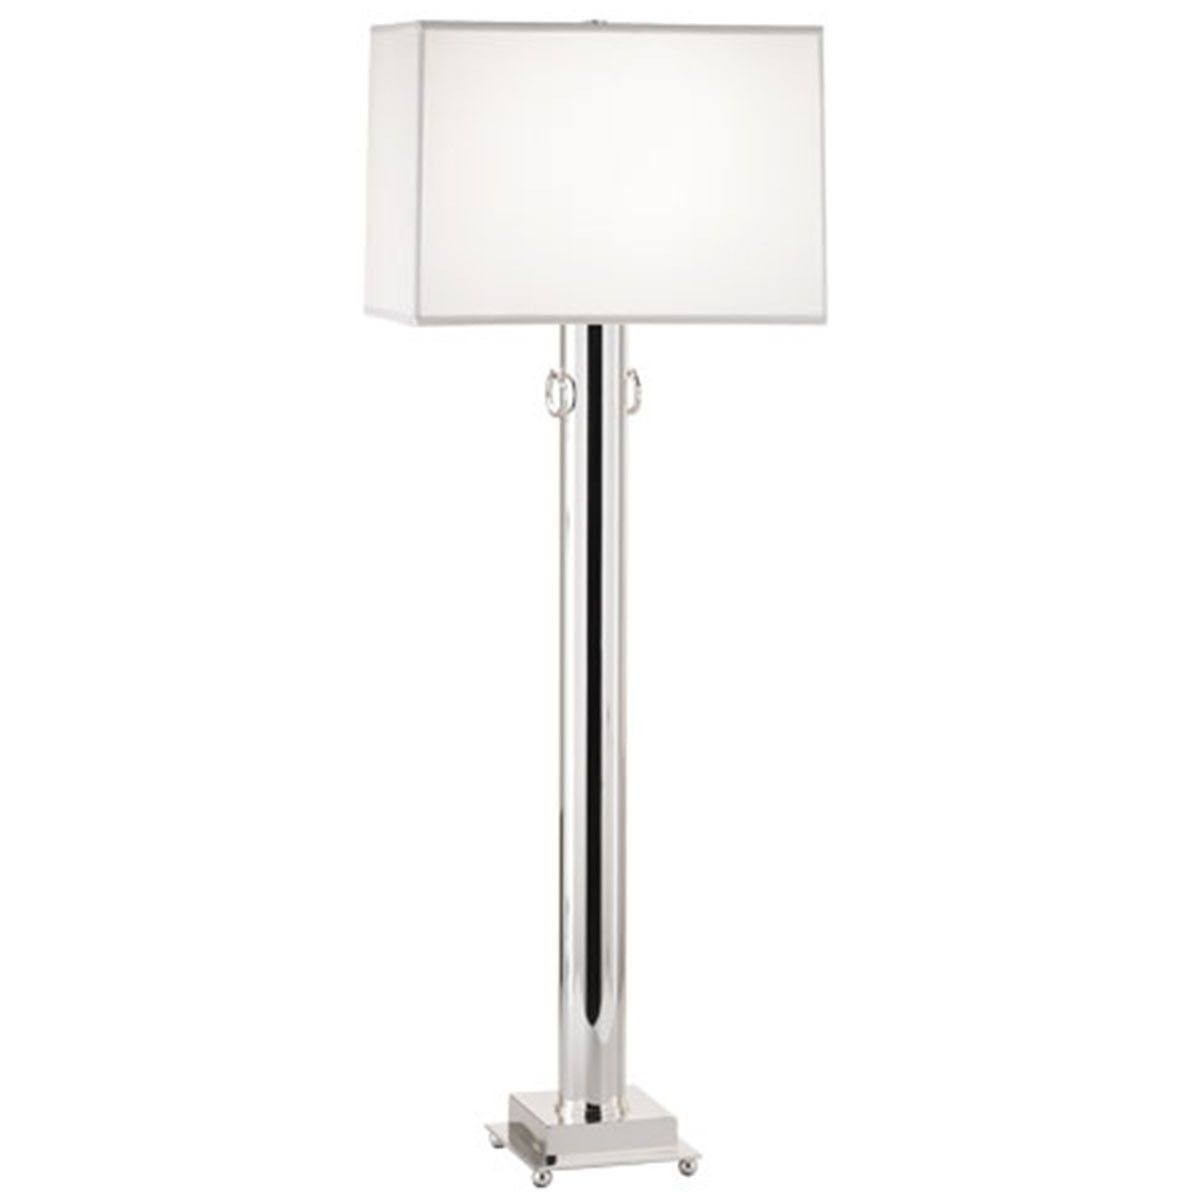 Robert abbey mary mcdonald ondine floor lamp shop now on